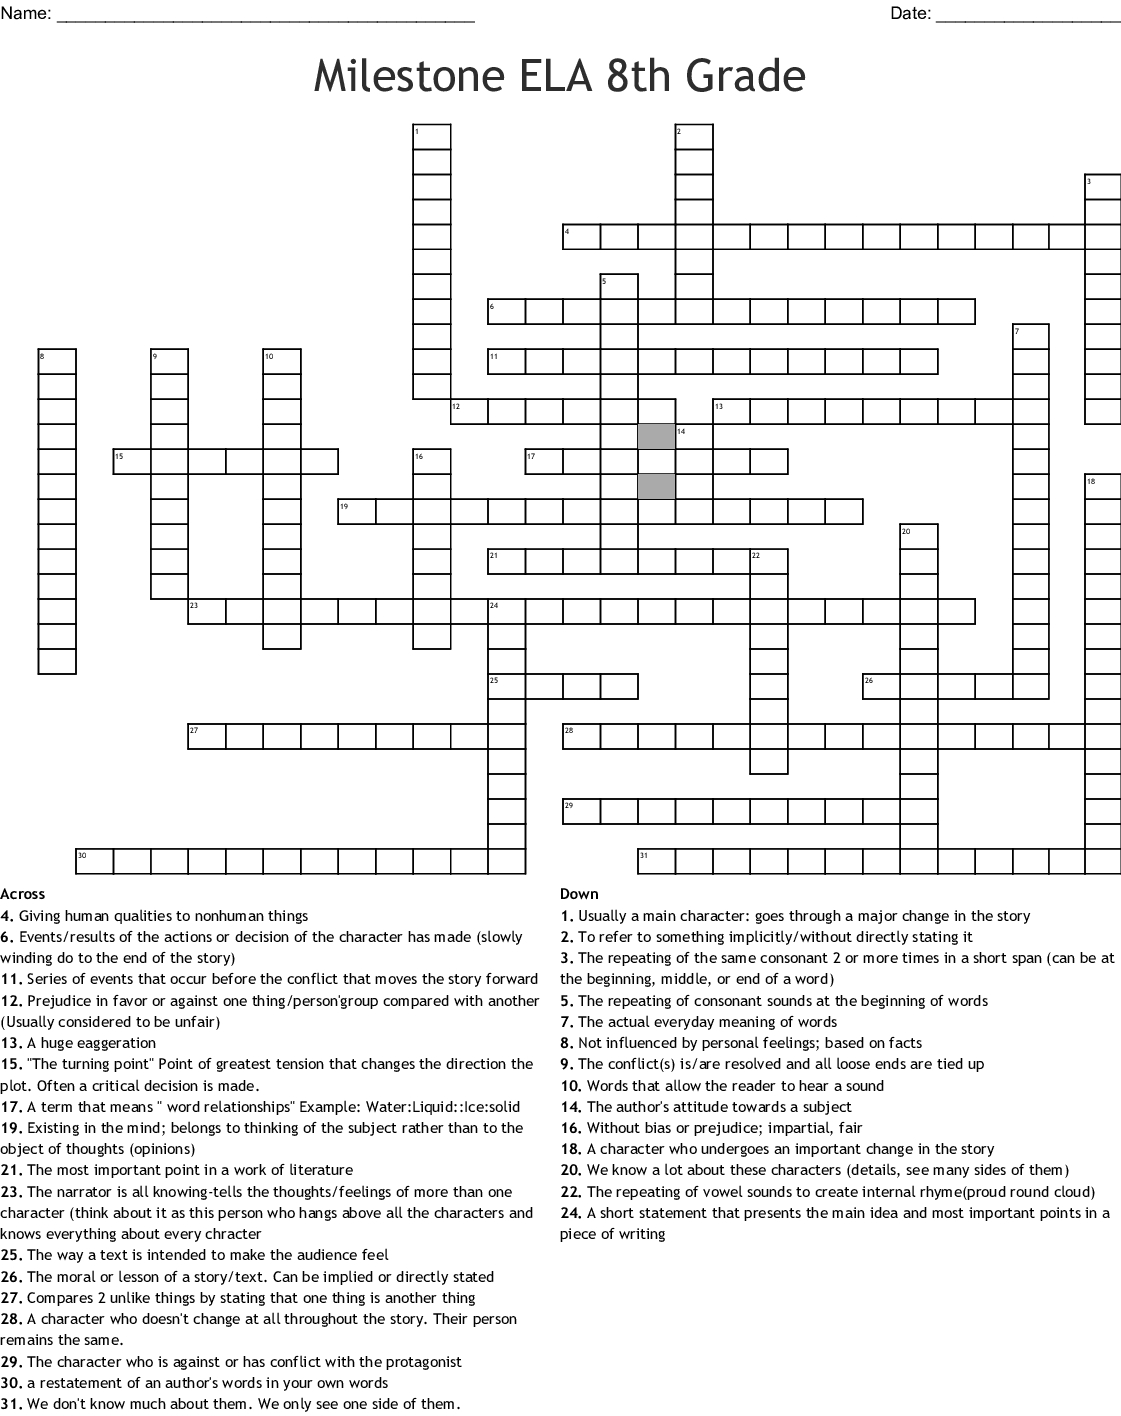 Milestone Ela 8Th Grade Crossword - Wordmint - Crossword Puzzles Printable 8Th Grade